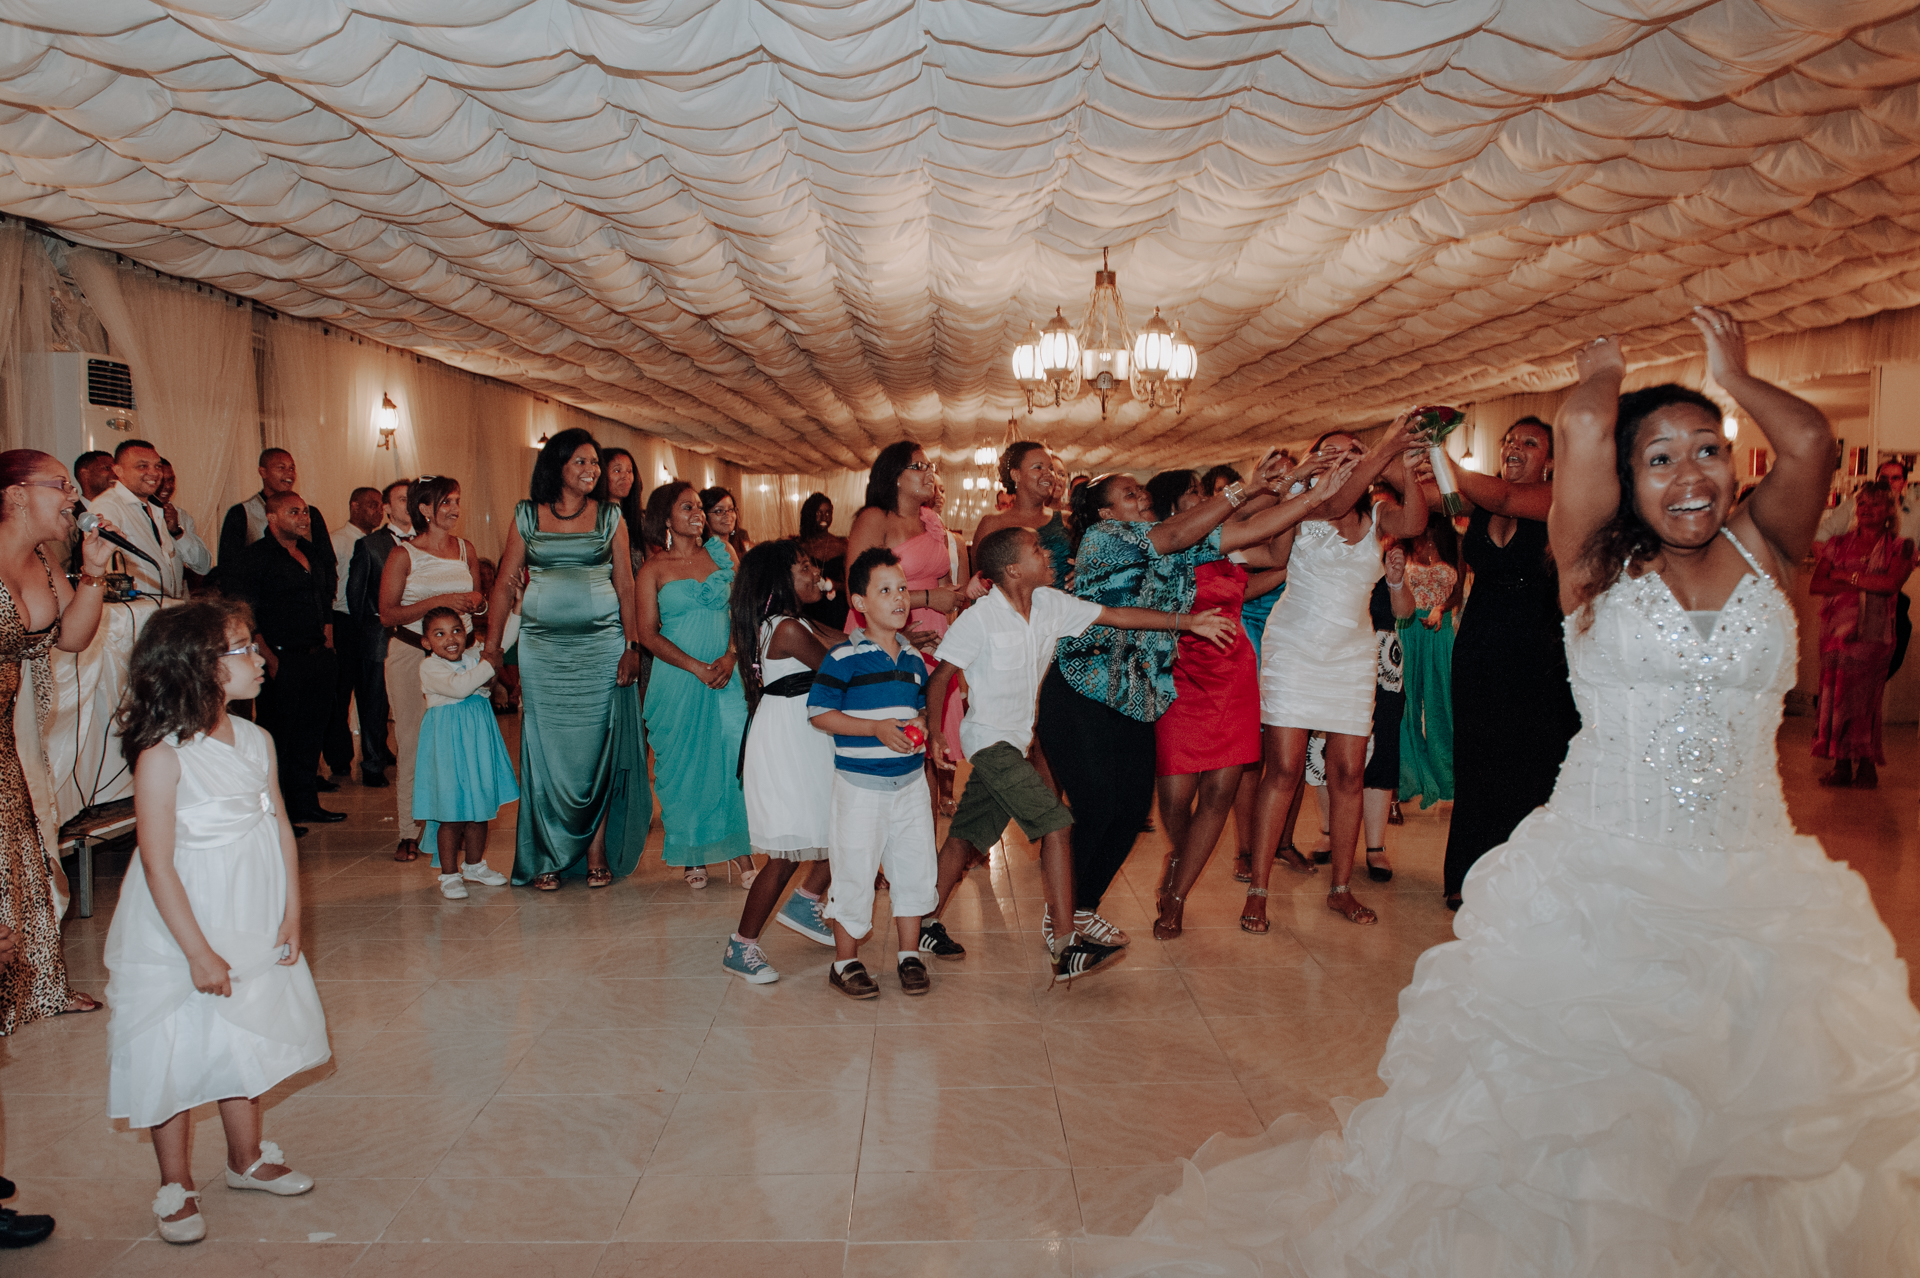 Portugal Wedding Reception Image, Lisbon | The bride tosses her bouquet toward hopeful guests